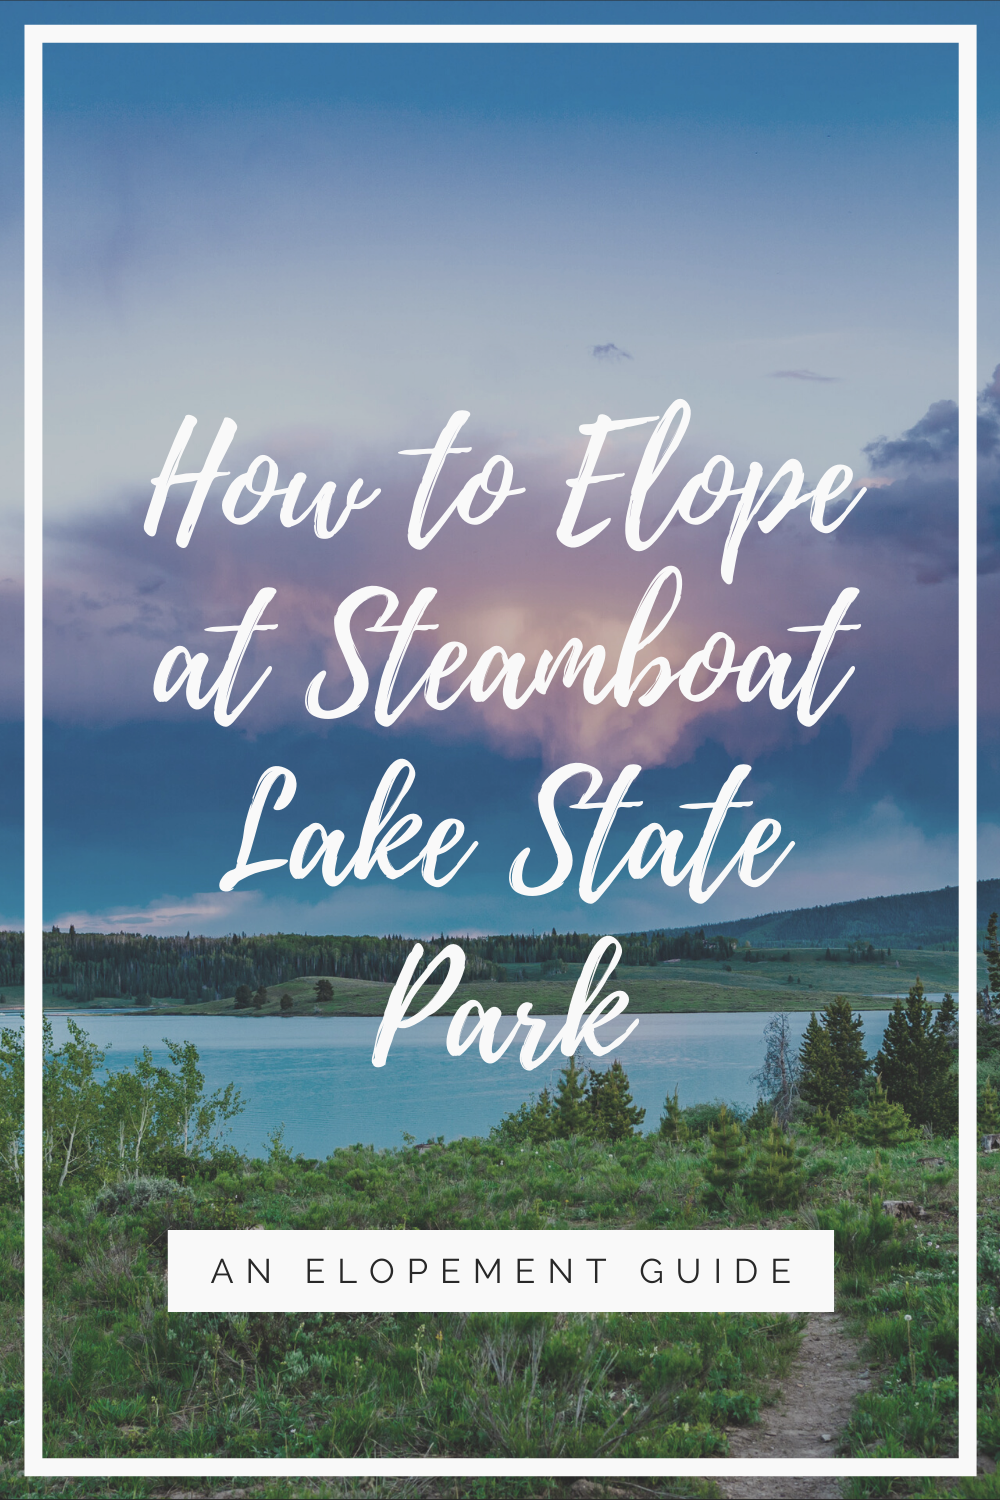 Are you looking for elopement destination ideas? We've brained stormed the best places to elope. Check out Steamboat Lake State Park in Colorado! This is a perfect location for adventure elopements.